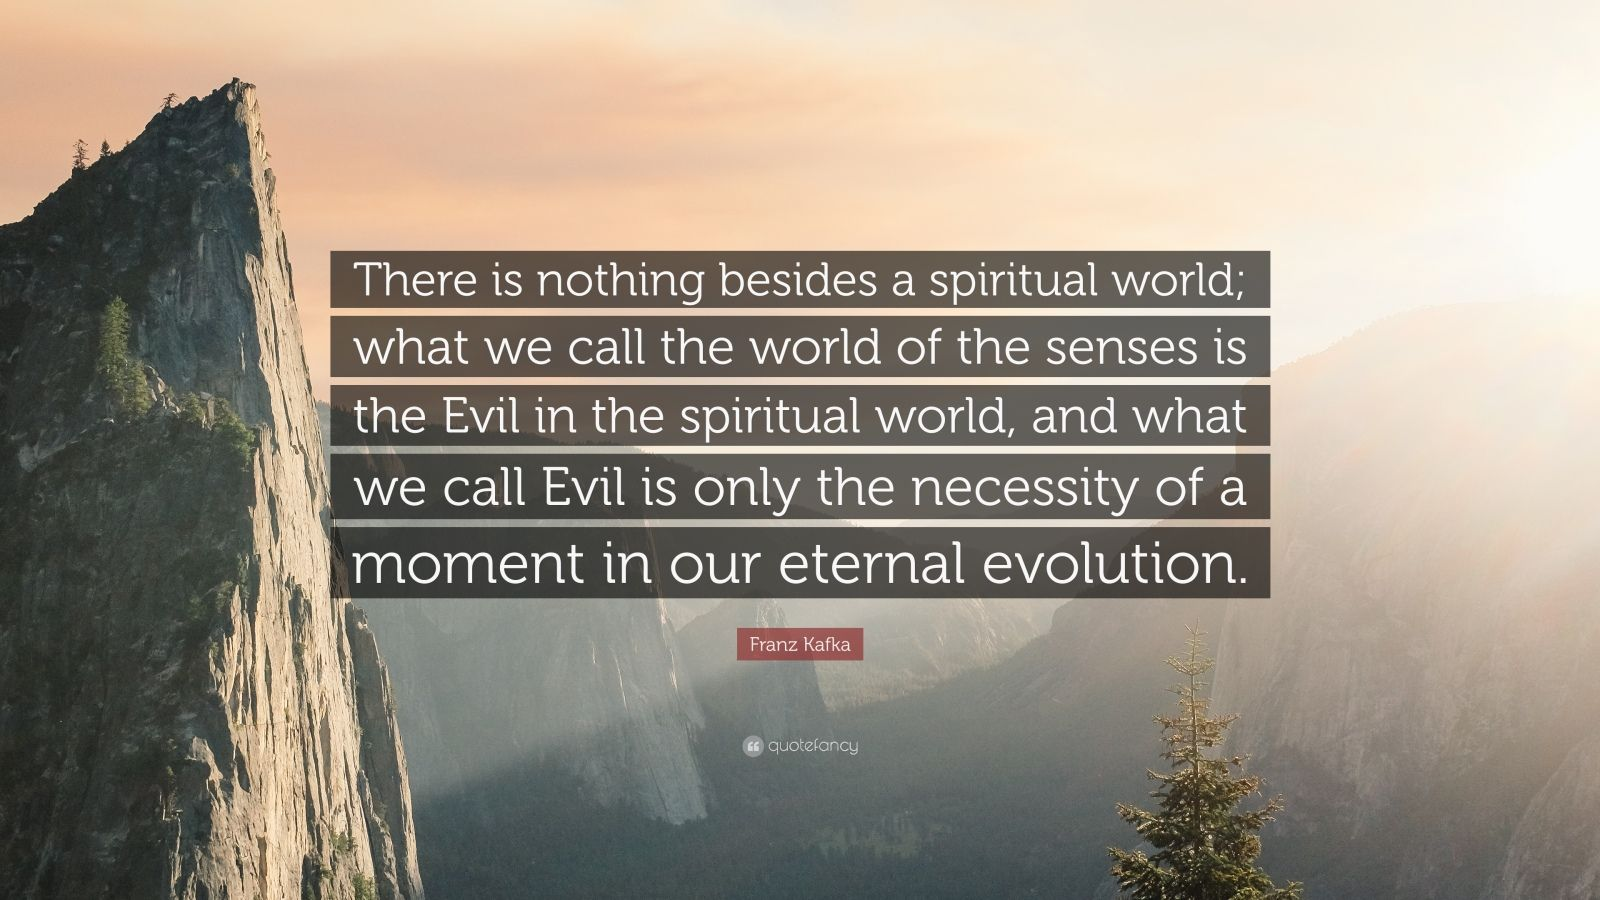 """Franz Kafka Quote: """"There is nothing besides a spiritual world; what we call the world of the senses is the Evil in the spiritual world, and what we call Evil is only the necessity of a moment in our eternal evolution."""""""